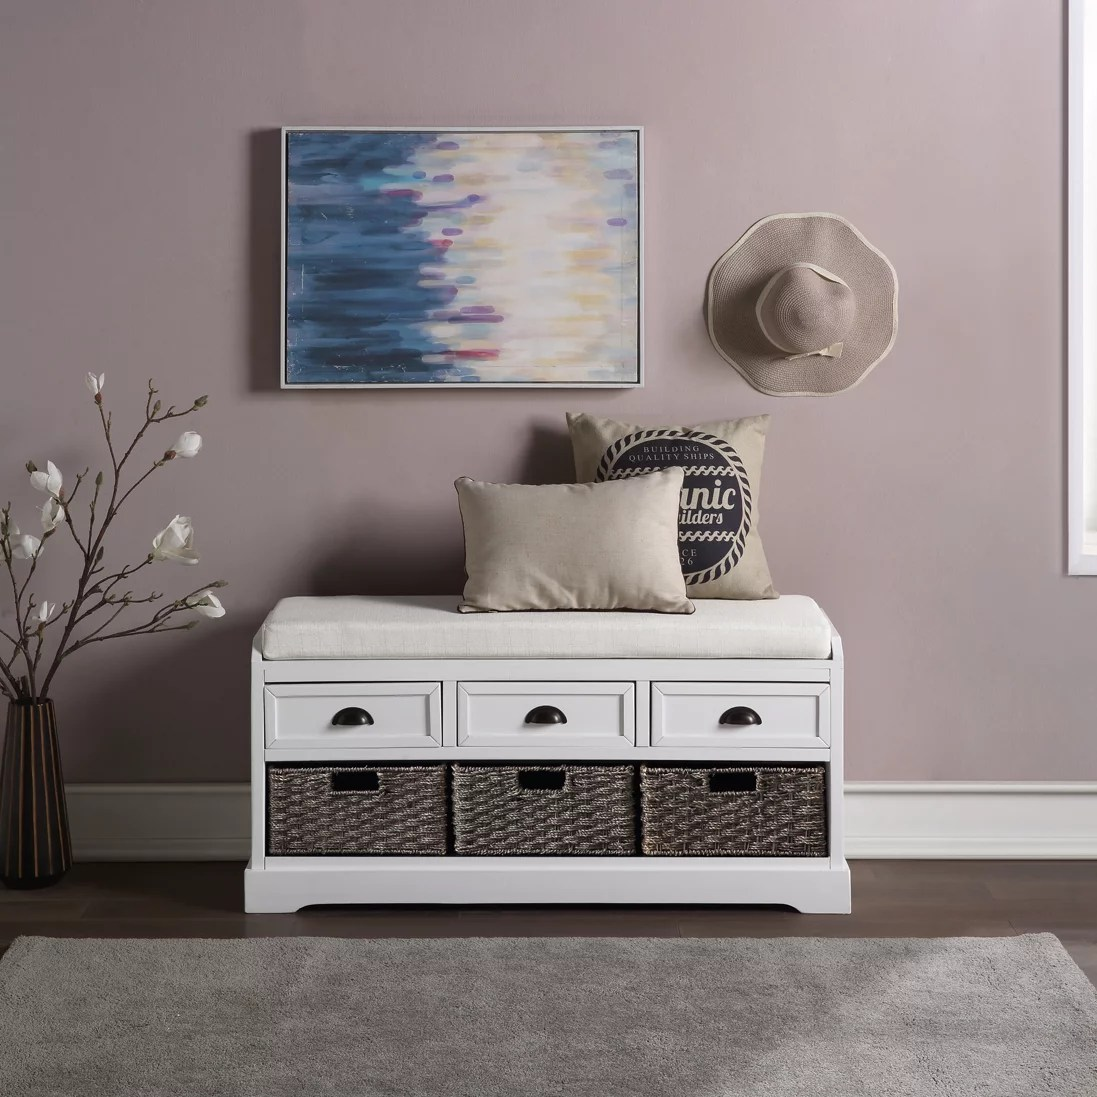 Entryway Bench With Storage Drawer Wooden Entryway Storage Bench Entryway Shoe Storage Bench End Of Bed Bench Foot Rest Ottoman Shoe Organizing Bench Hallway Foyer Bedroom Bench White A1252 Walmart Com